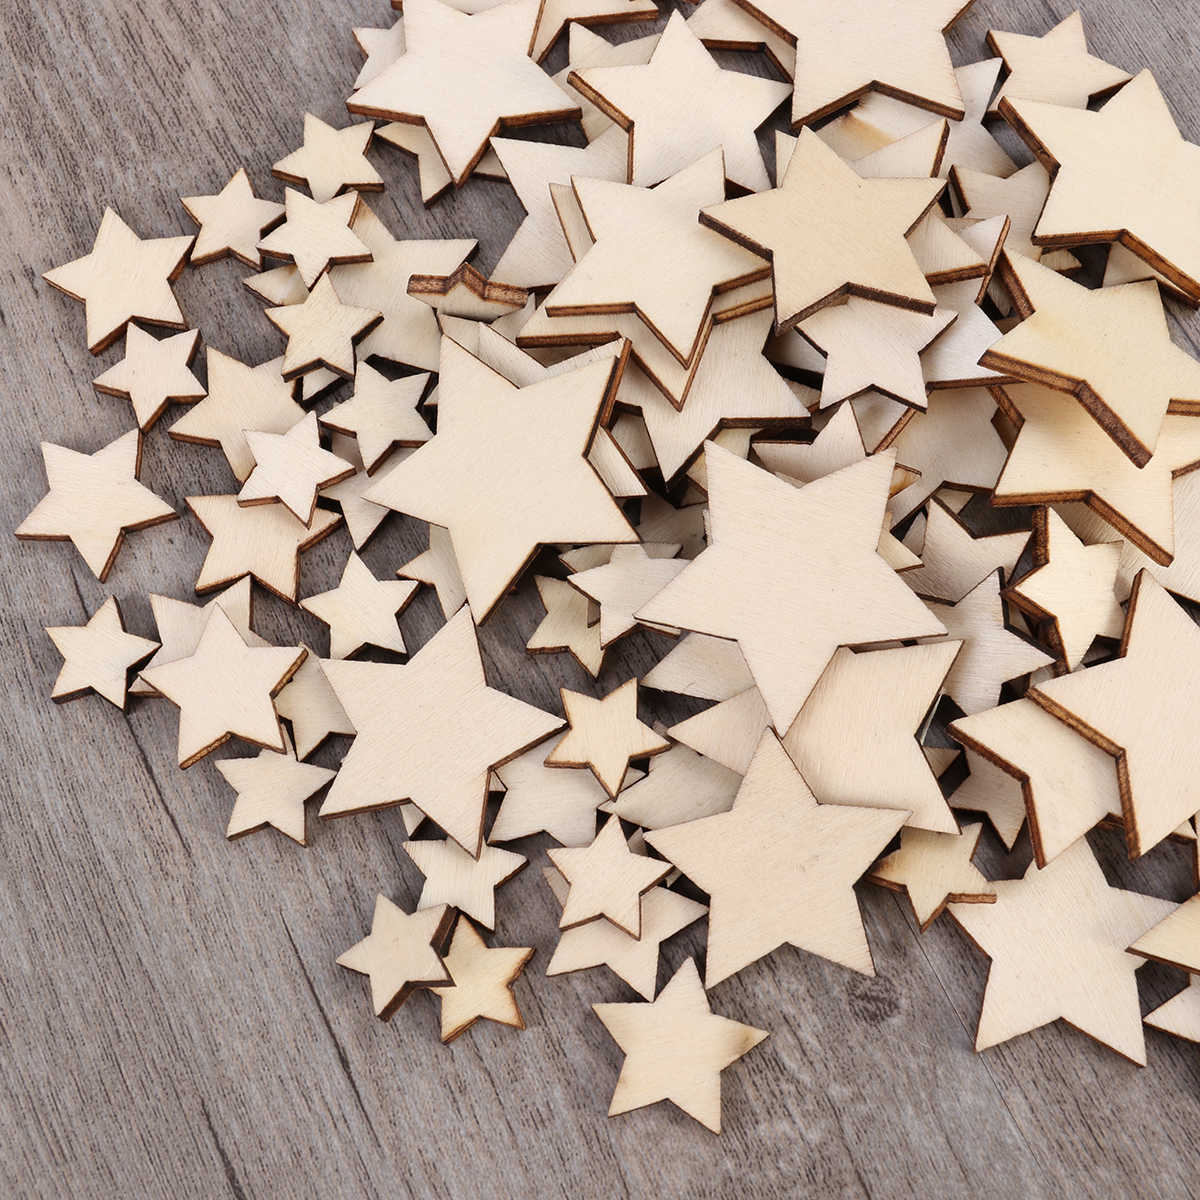 100PCS Unfinished Wooden Stars Assorted Size Cutout Discs For Arts Crafts DIY Decoration Birthday Wedding Display Decor